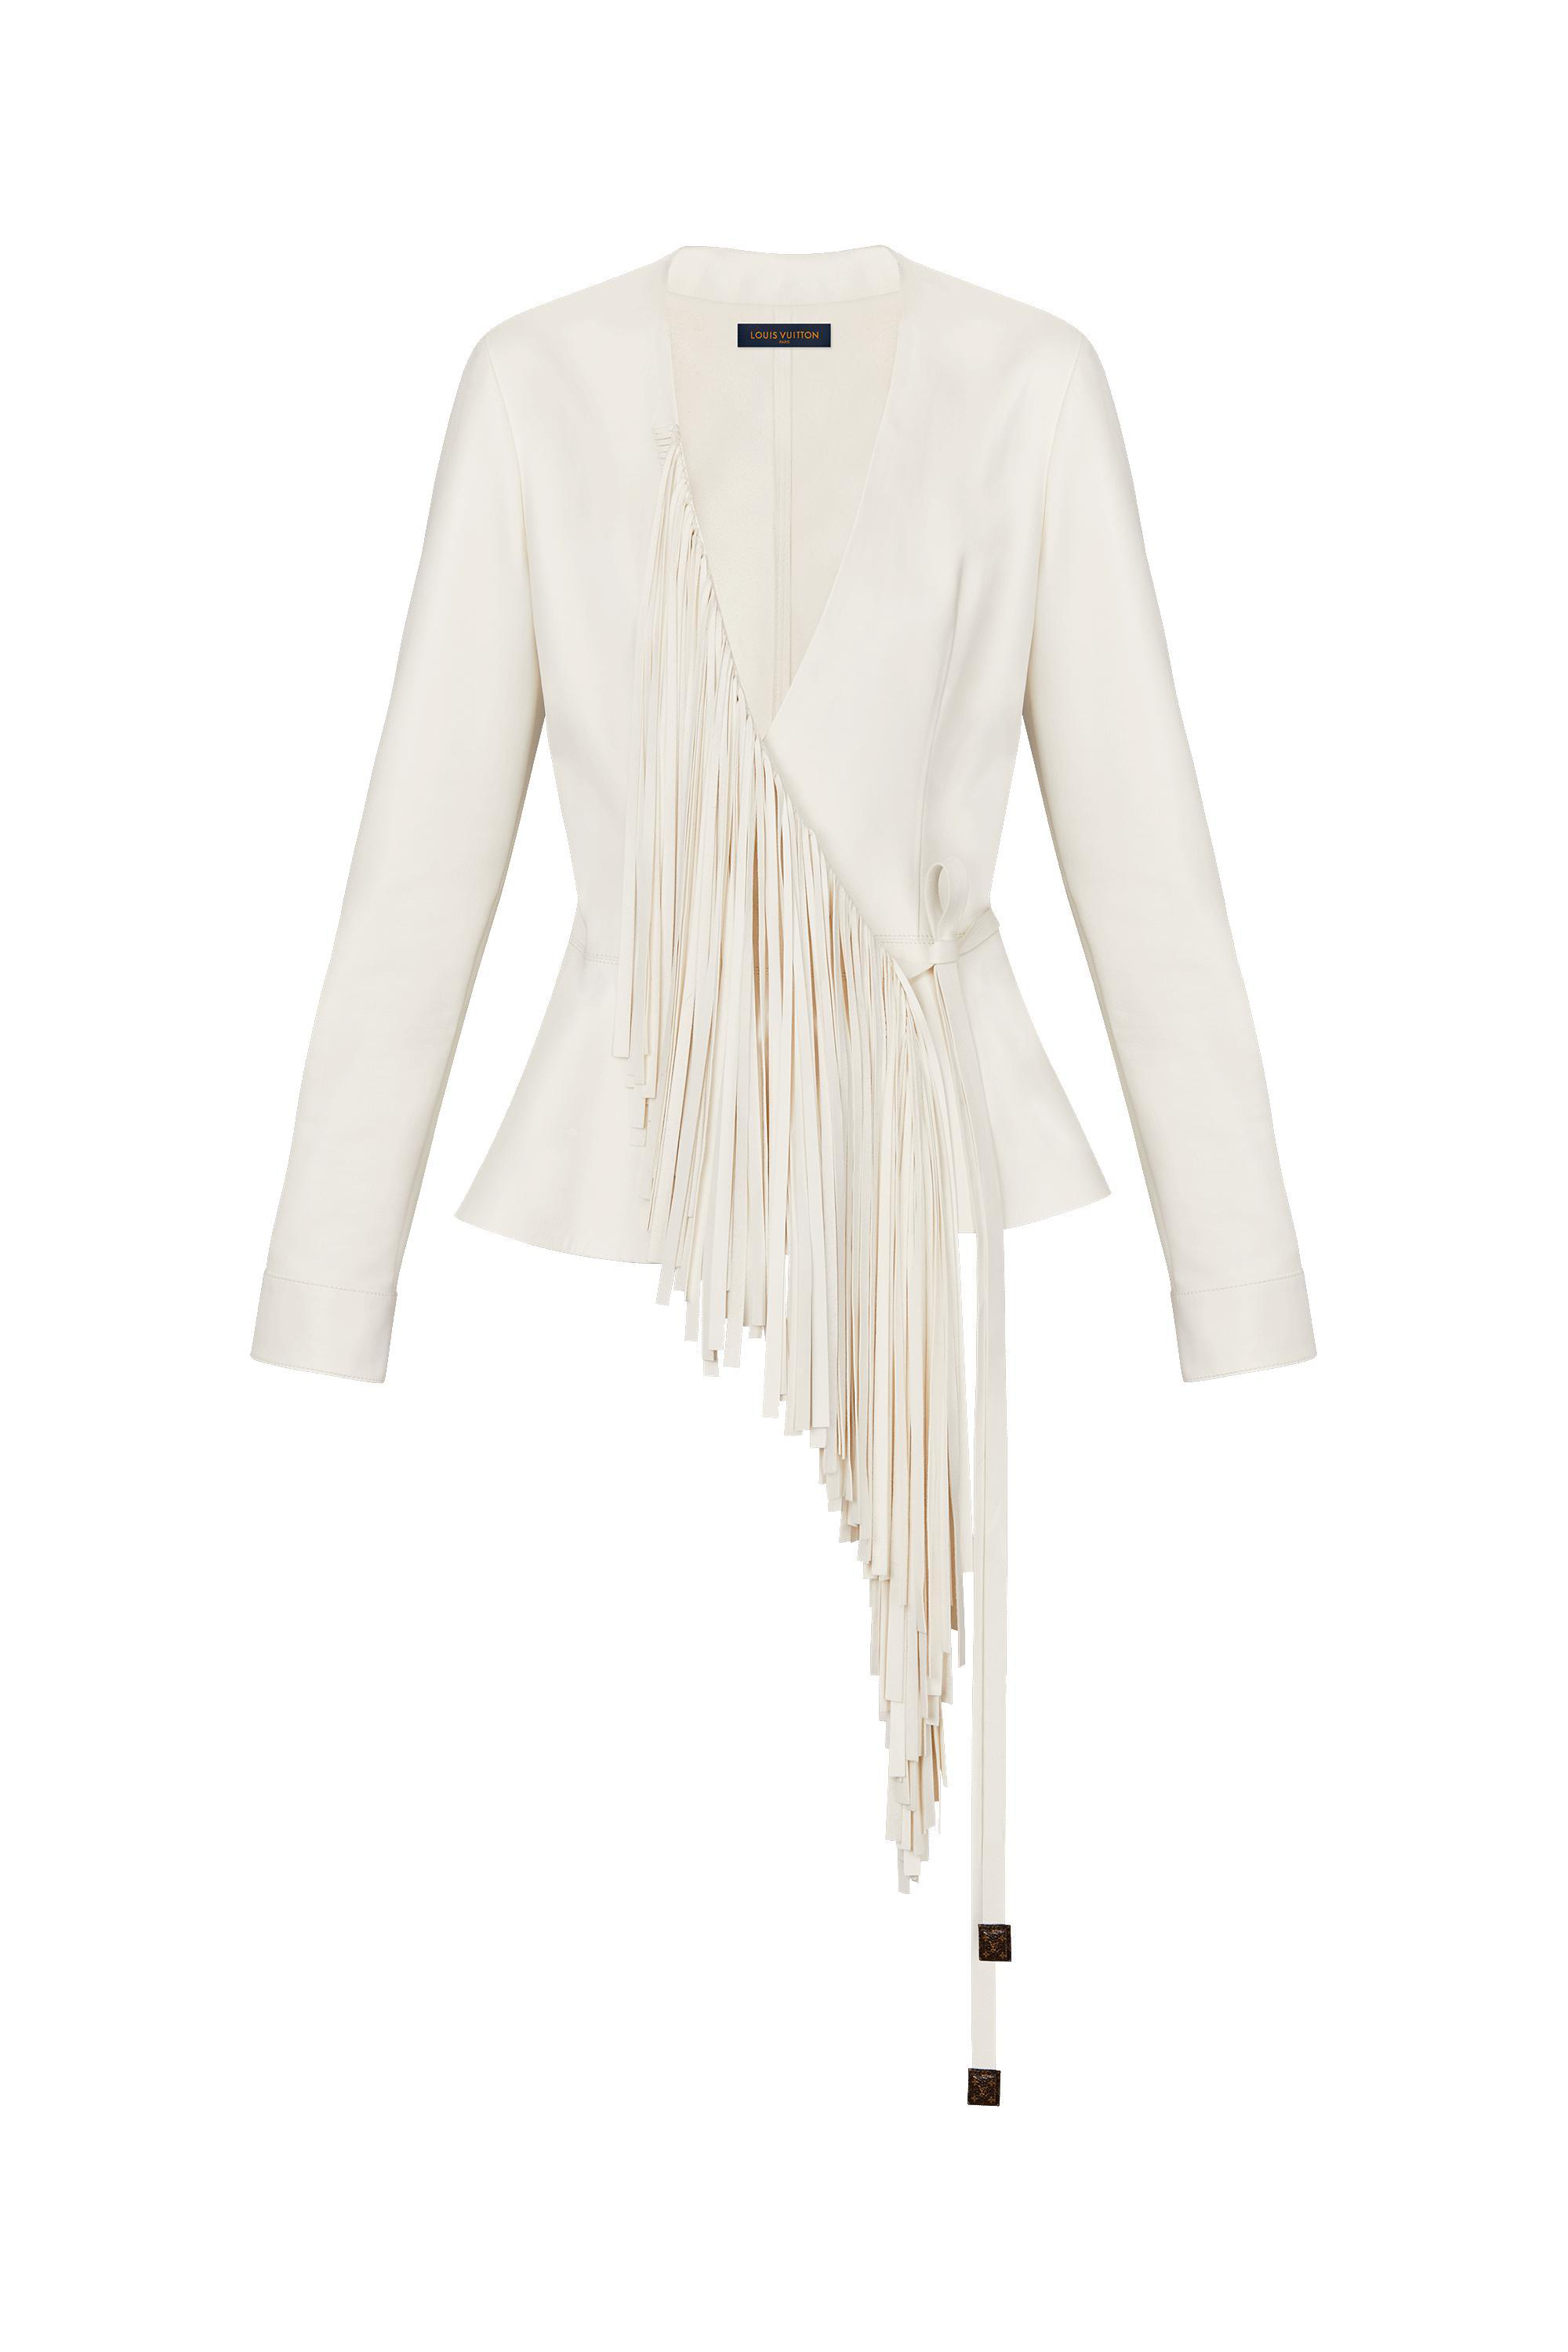 a2fd25ee1c19f Louis Vuitton Embroidered Lambskin Wrap Blouse In Blanc | ModeSens